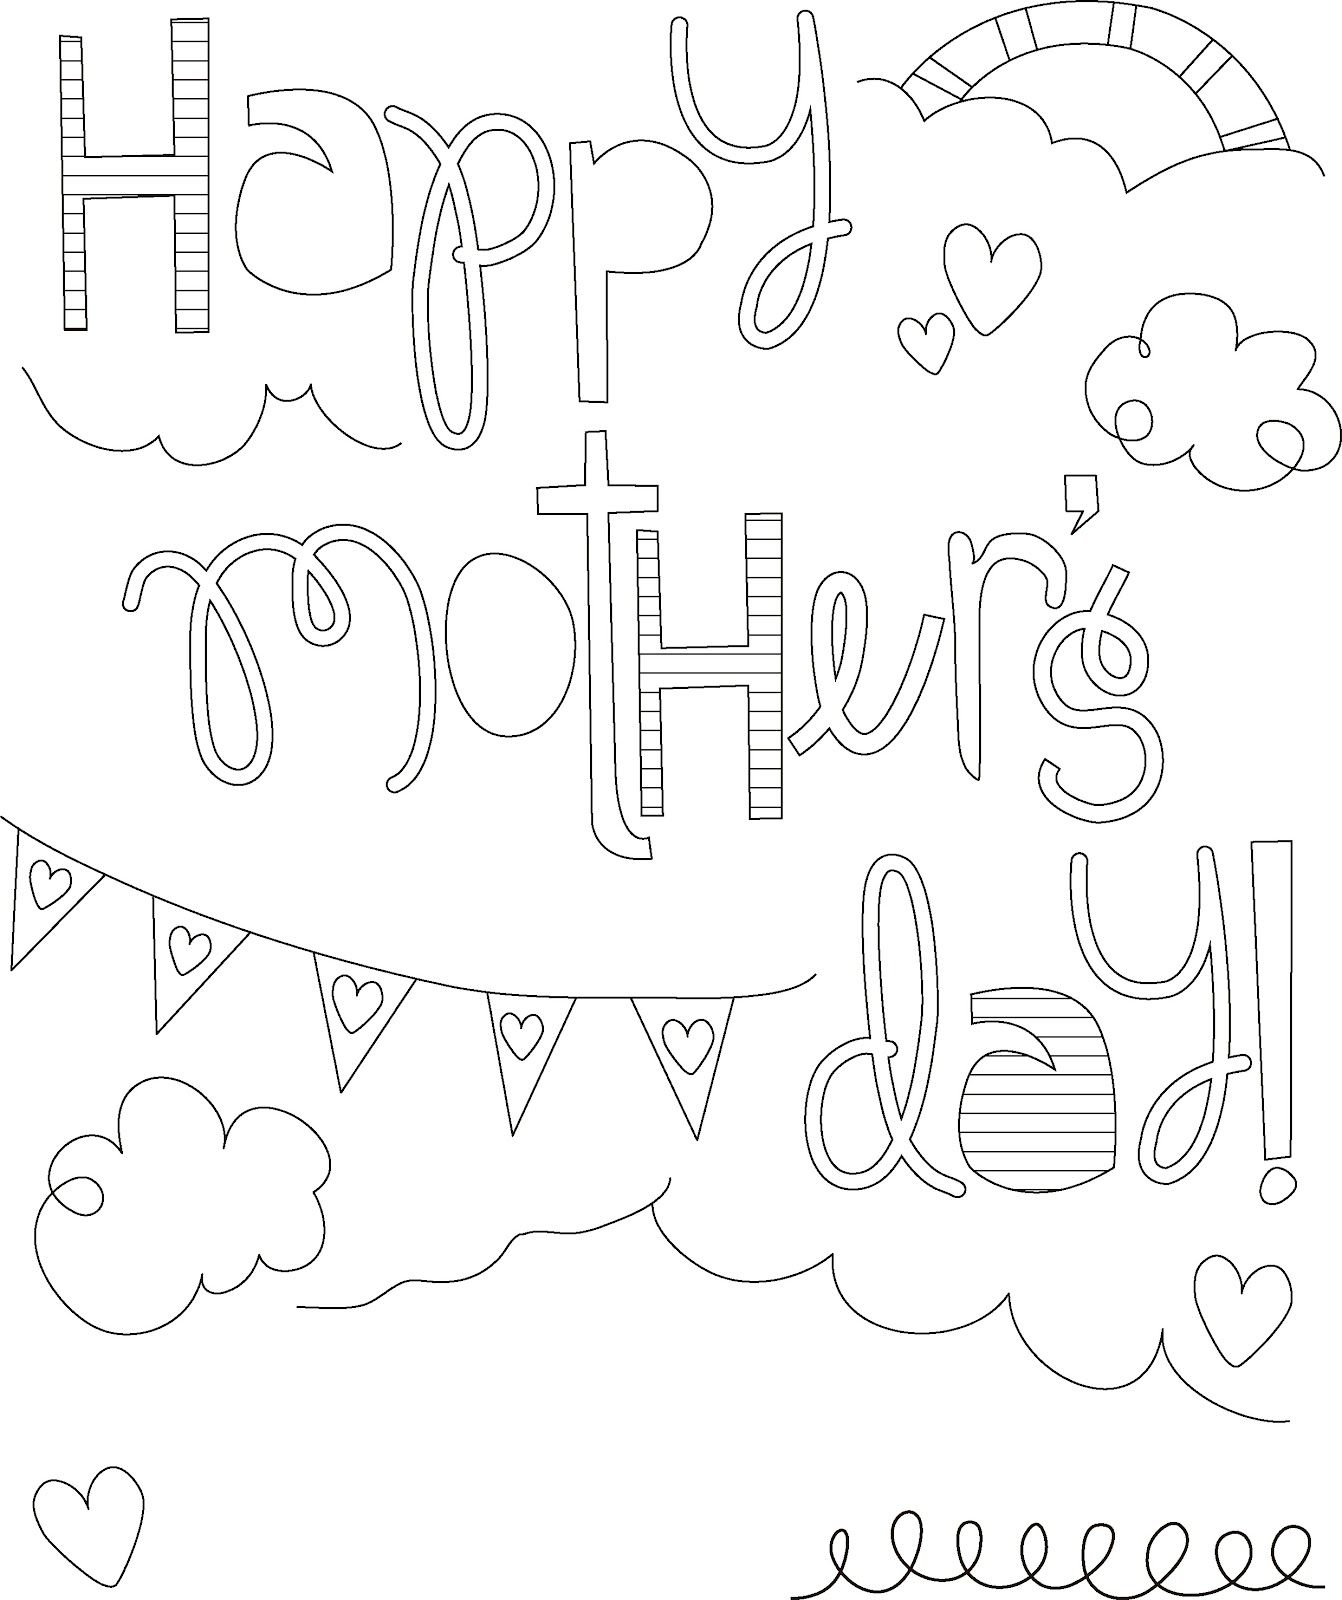 Here is a collection of some Mother's Day coloring pages